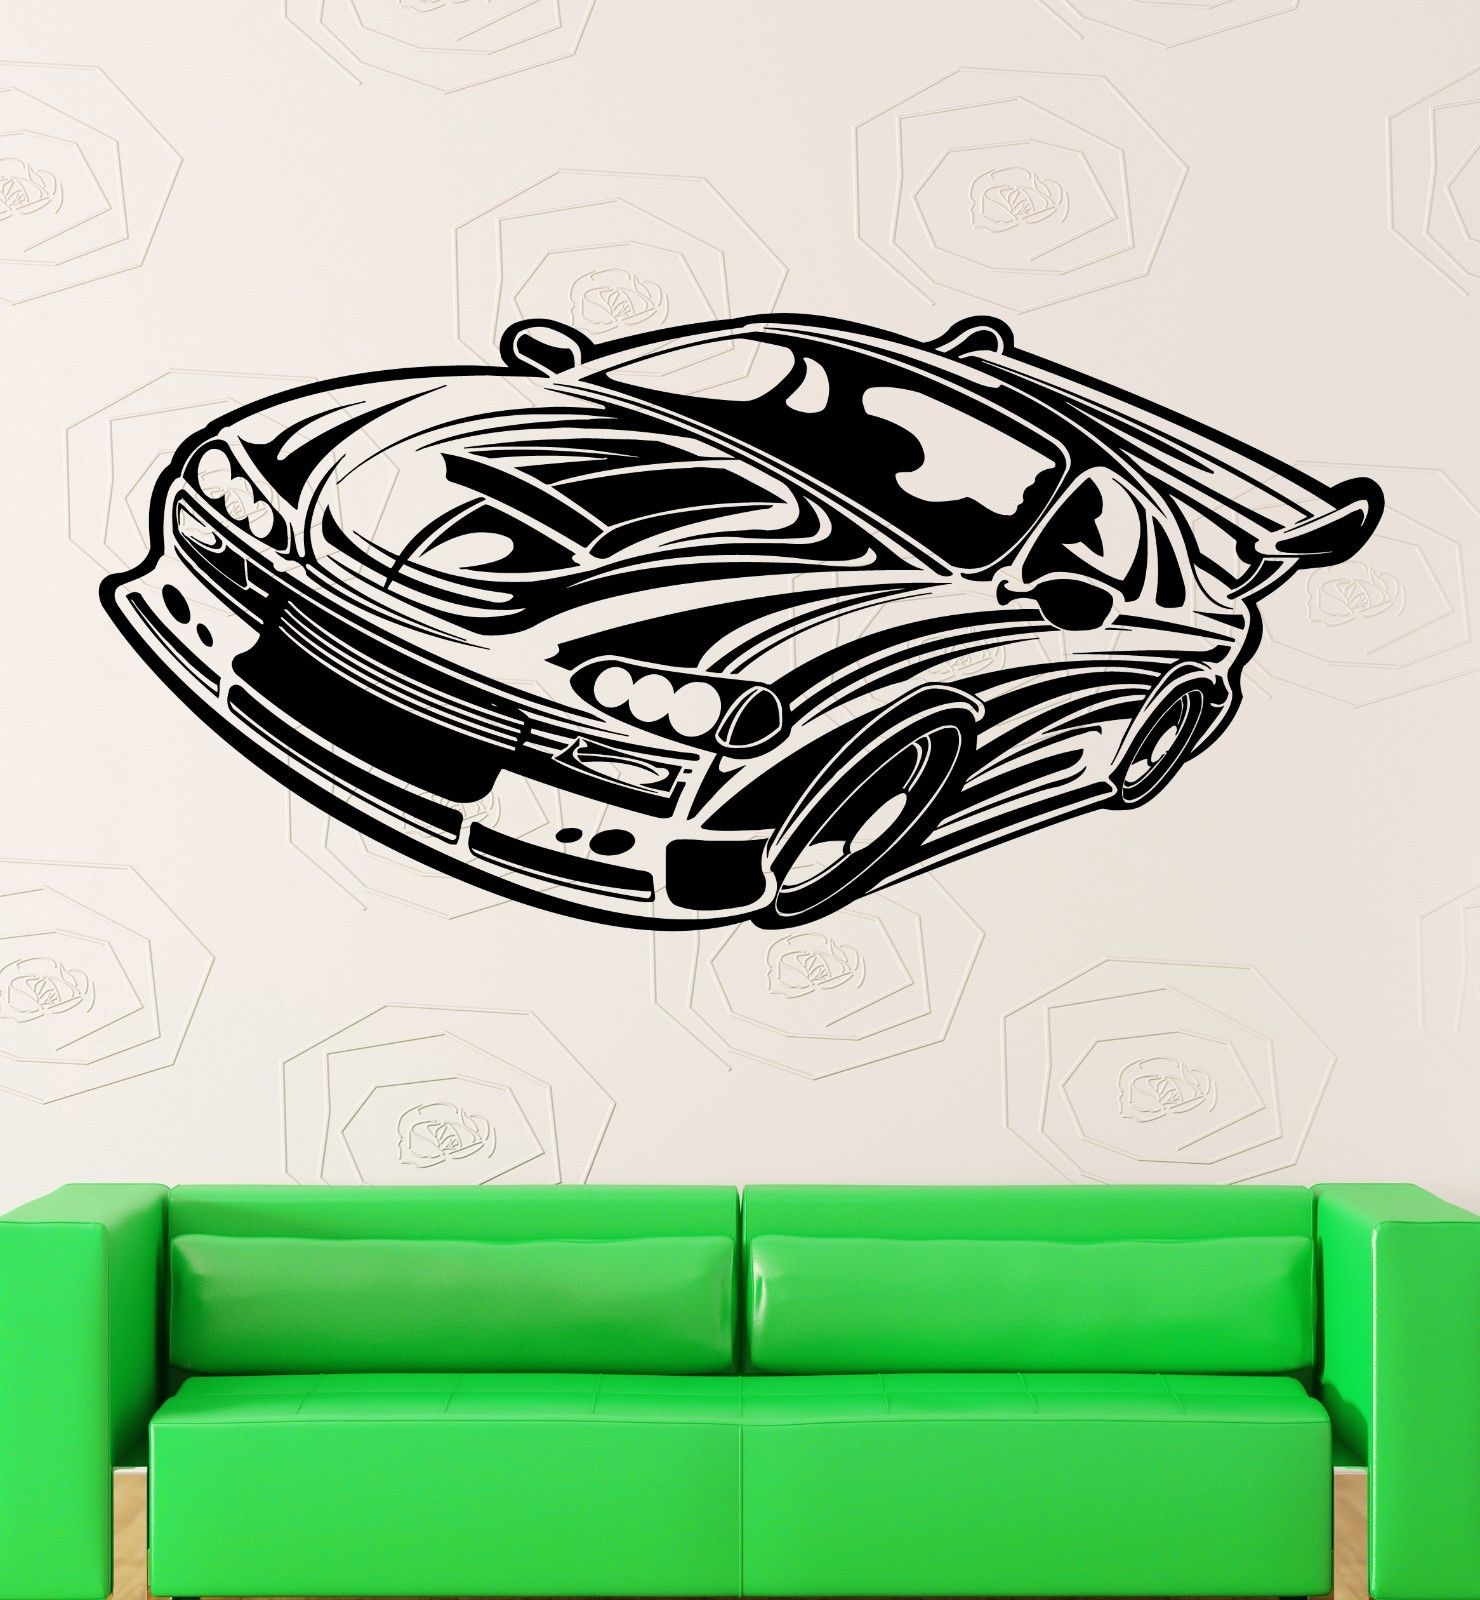 Online Get Cheap Race Car Wall Stickers Aliexpresscom Alibaba - Vinyl decals for race cars